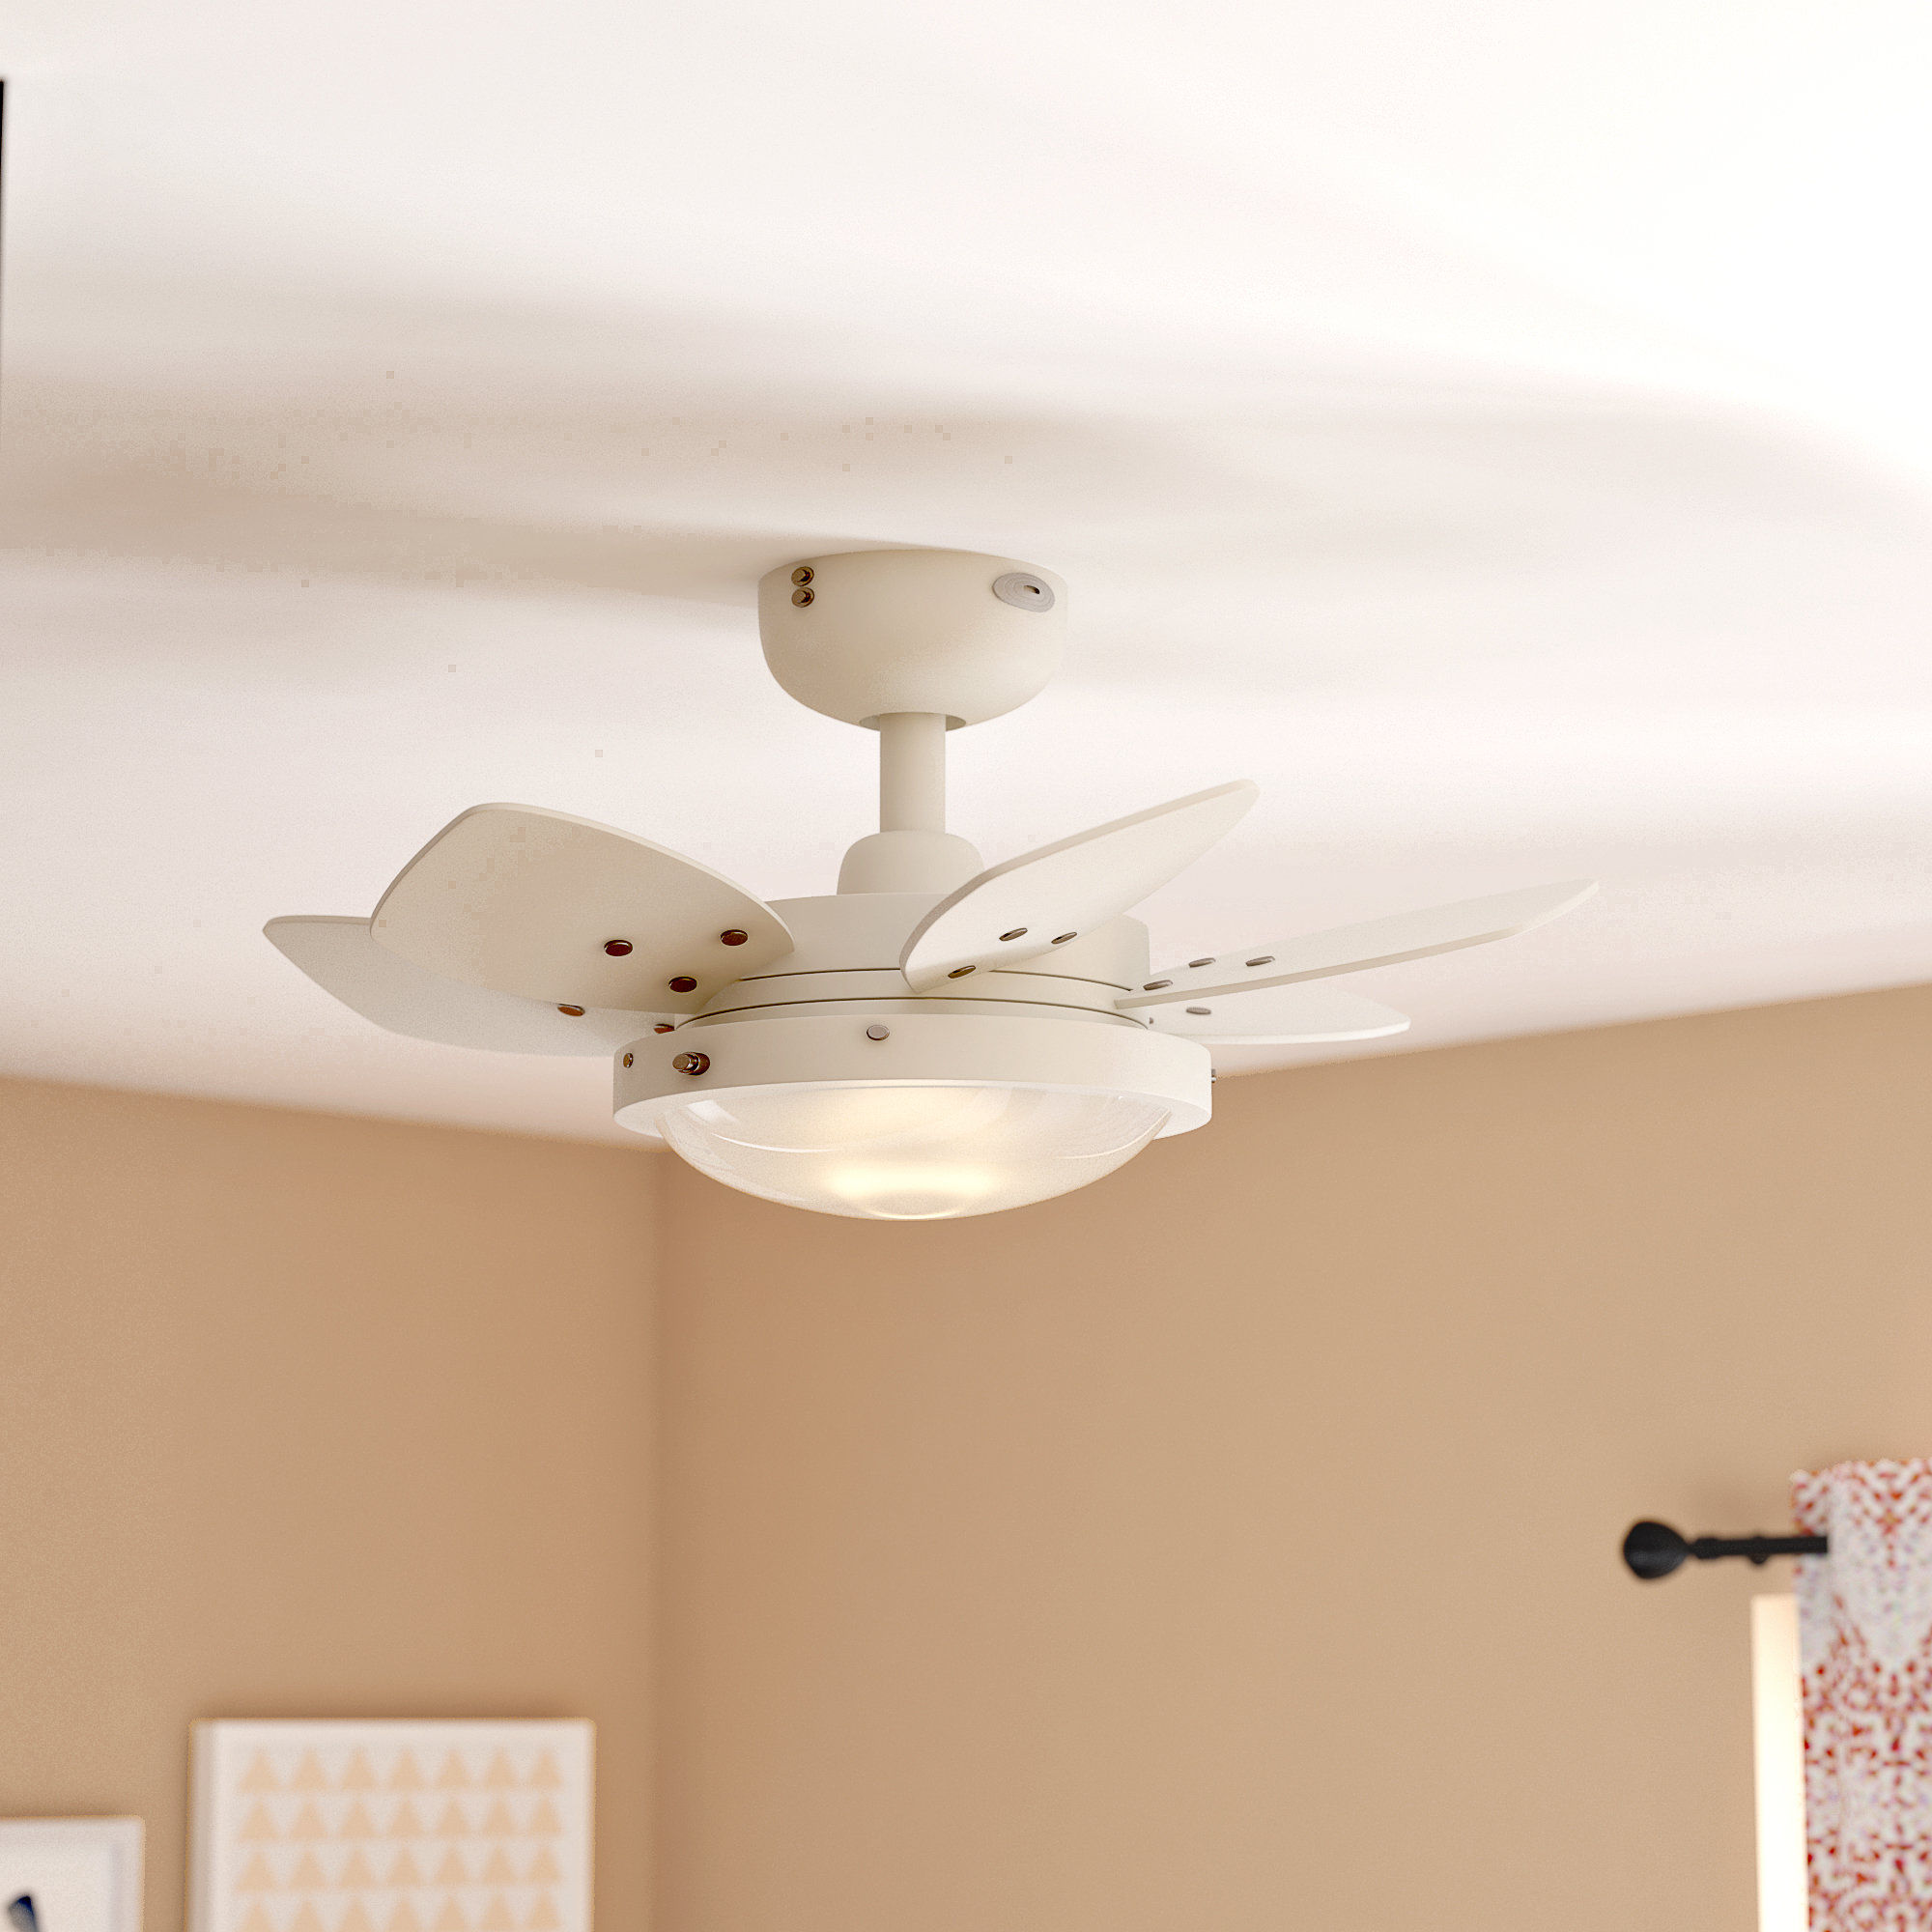 "24"" Chenut 6 Blade Ceiling Fan Light Kit Included With Regard To Well Known Corry 6 Blade Ceiling Fans (Gallery 6 of 20)"